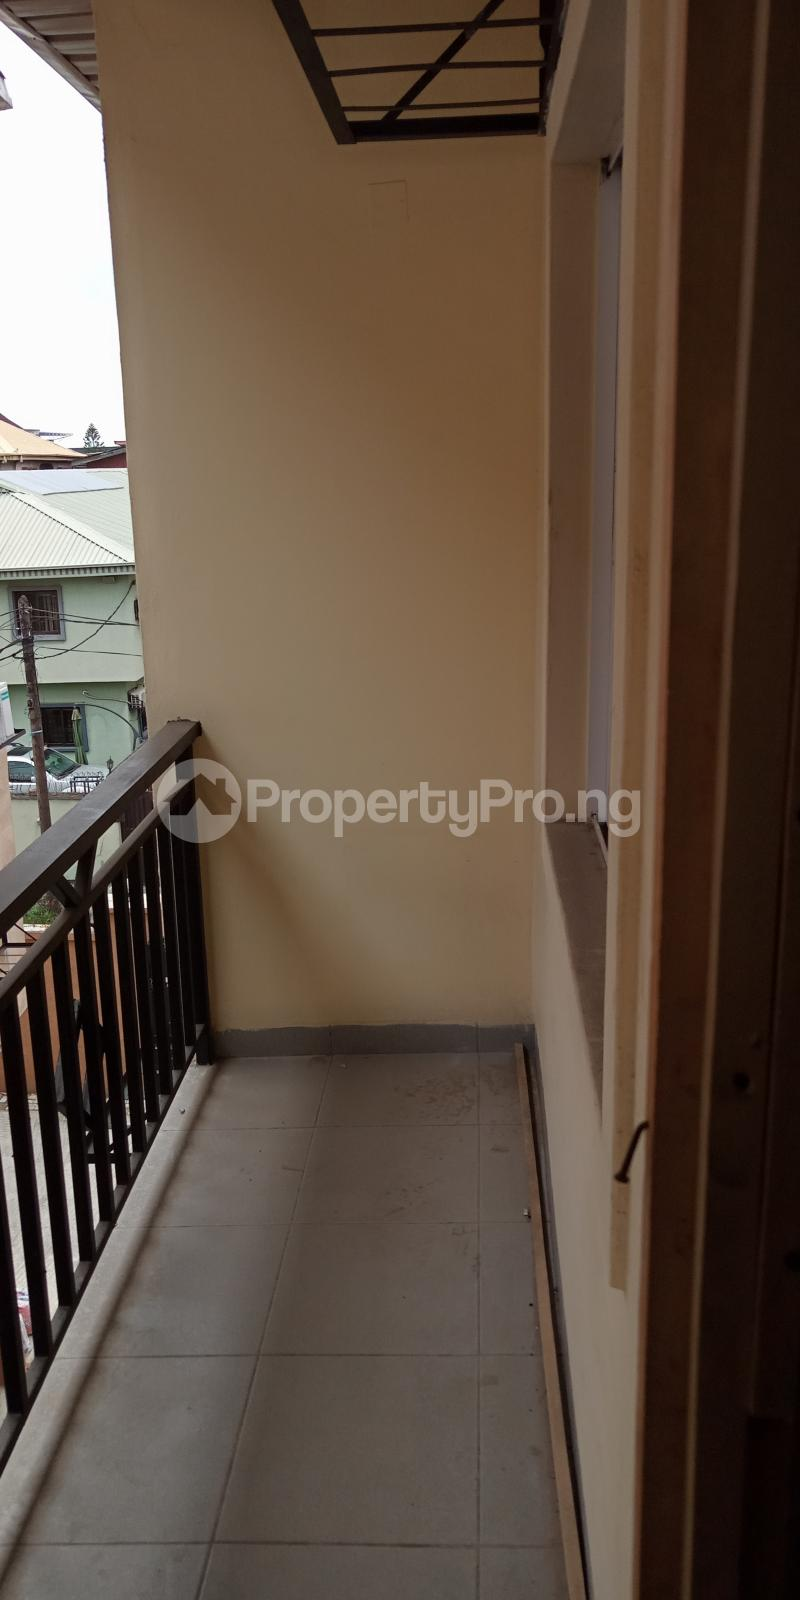 3 bedroom Flat / Apartment for rent Alagomeji Alagomeji Yaba Lagos - 10